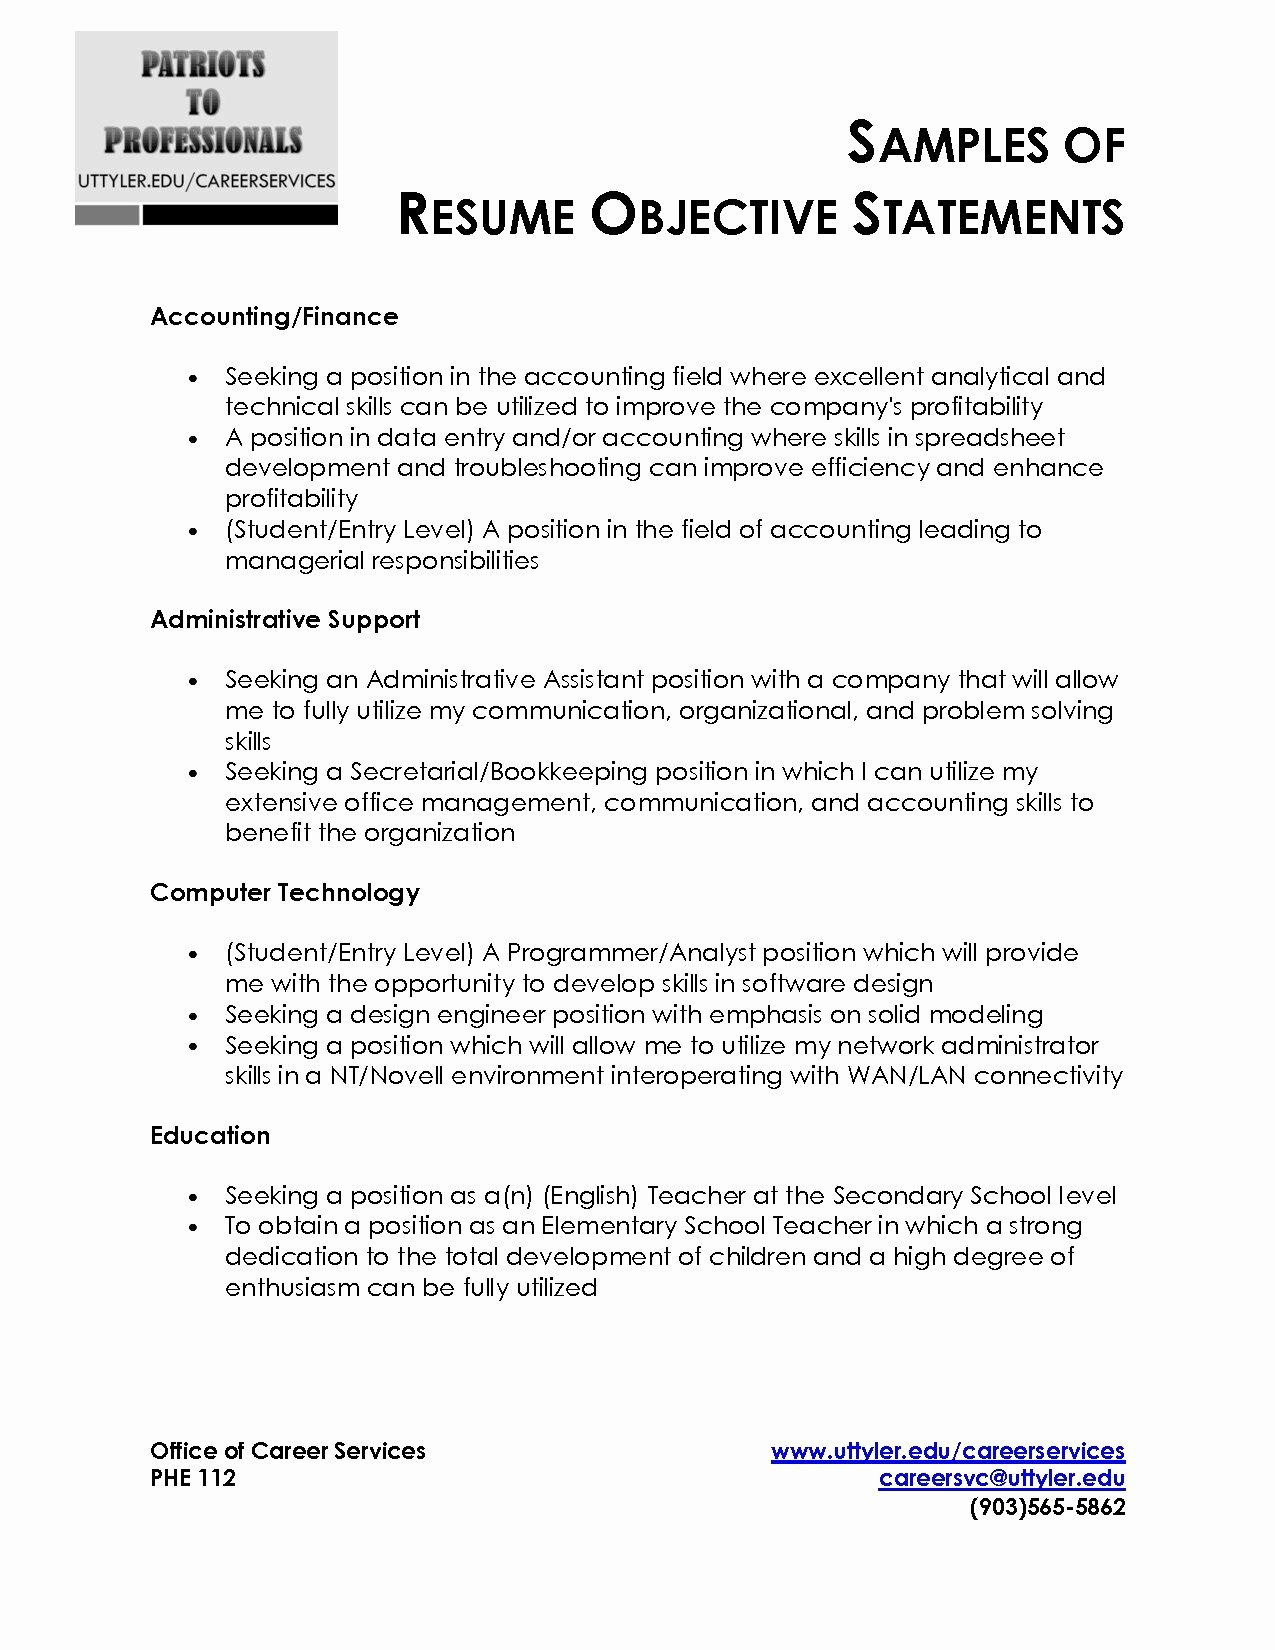 Pin by Rachel Franco On Resume Writing